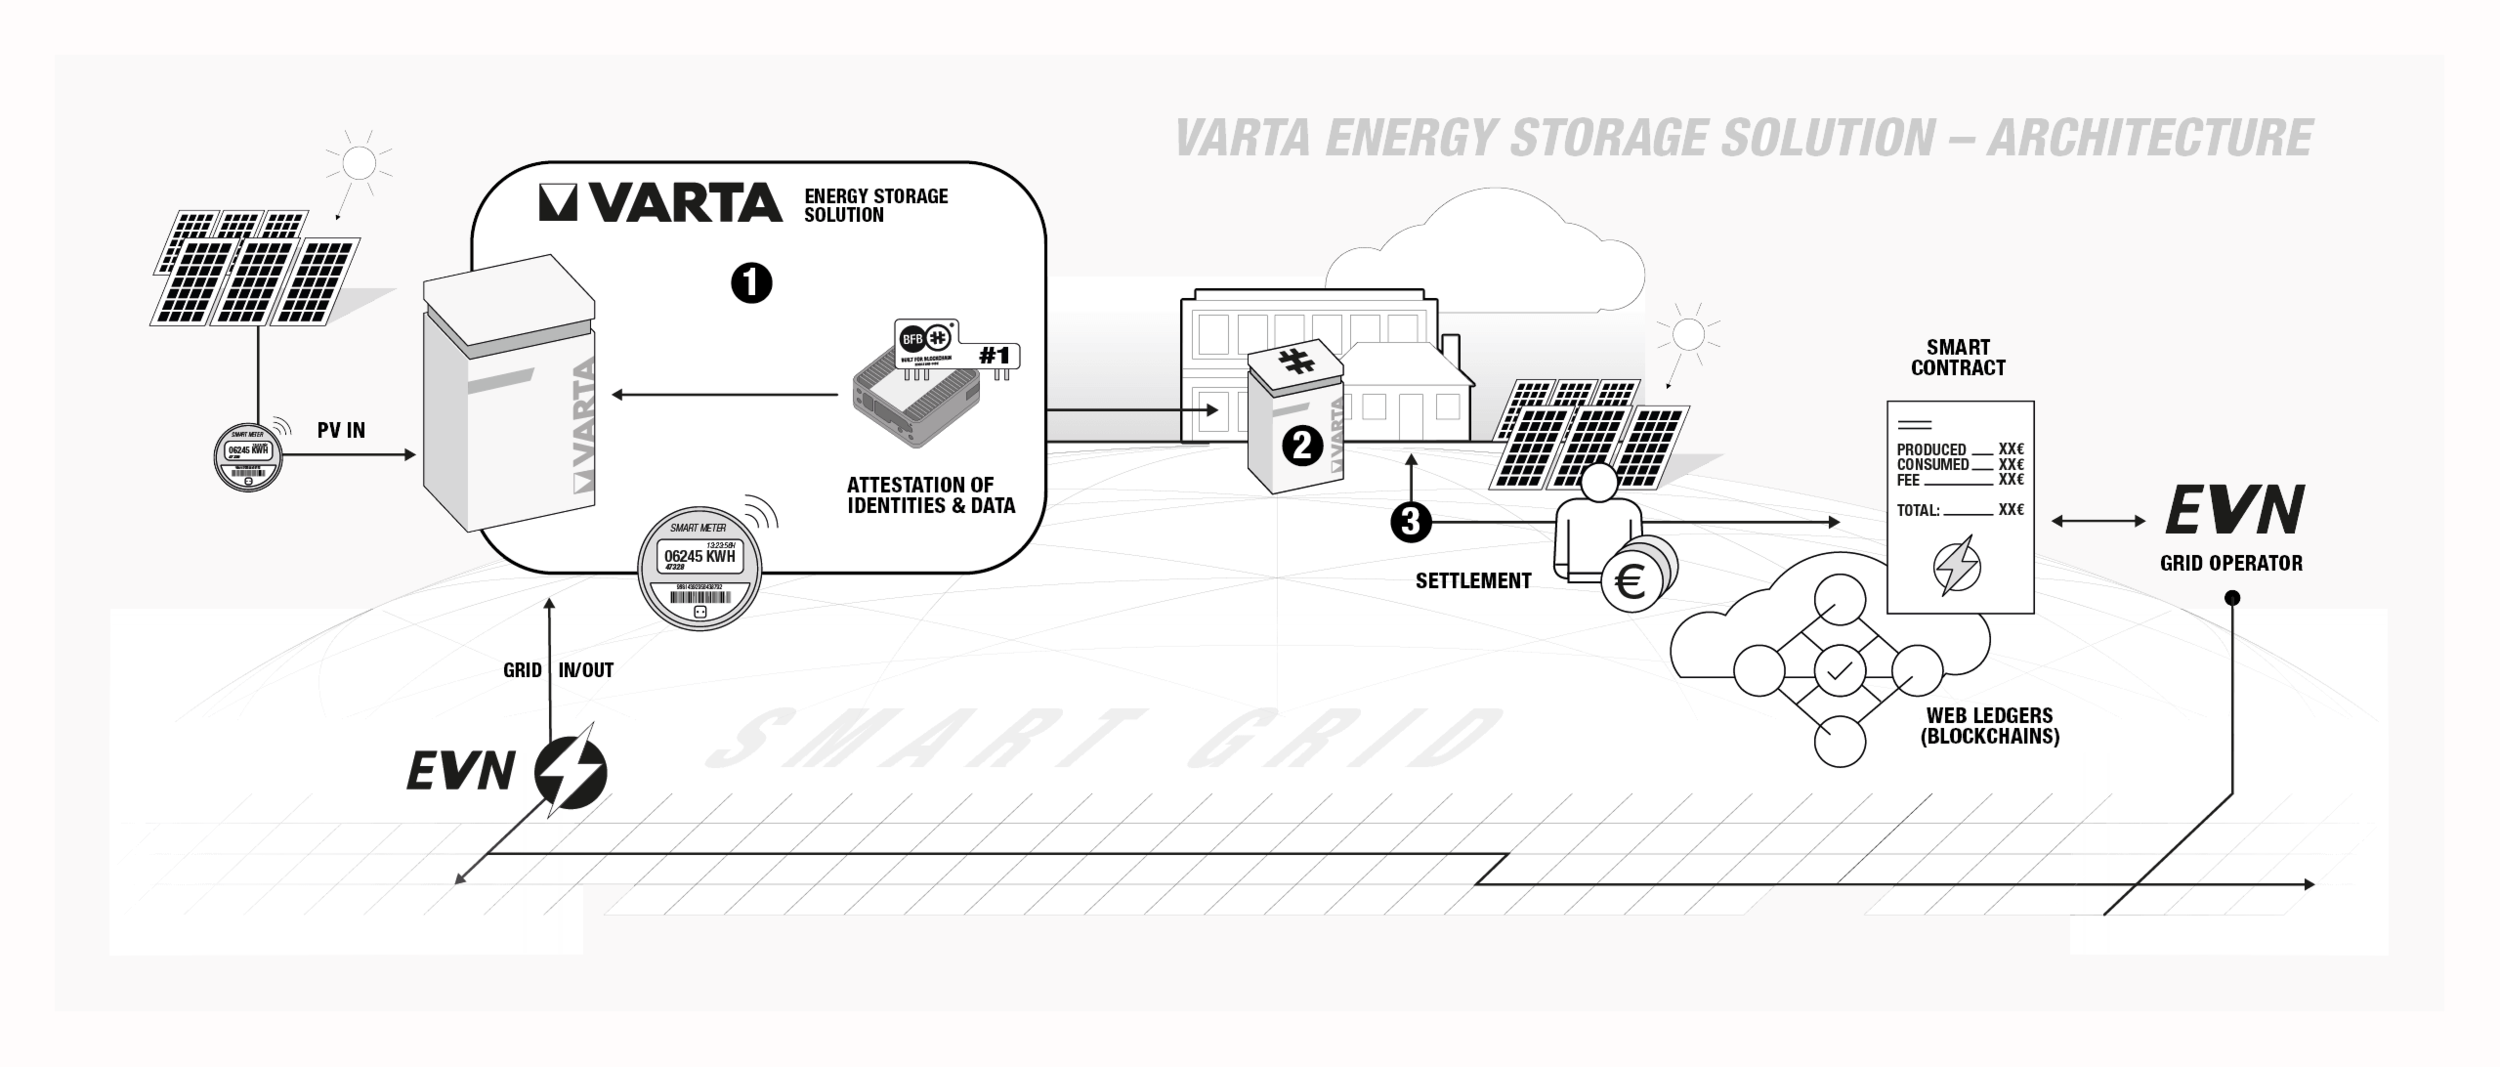 Varta Energy Storage Solution - Architecture